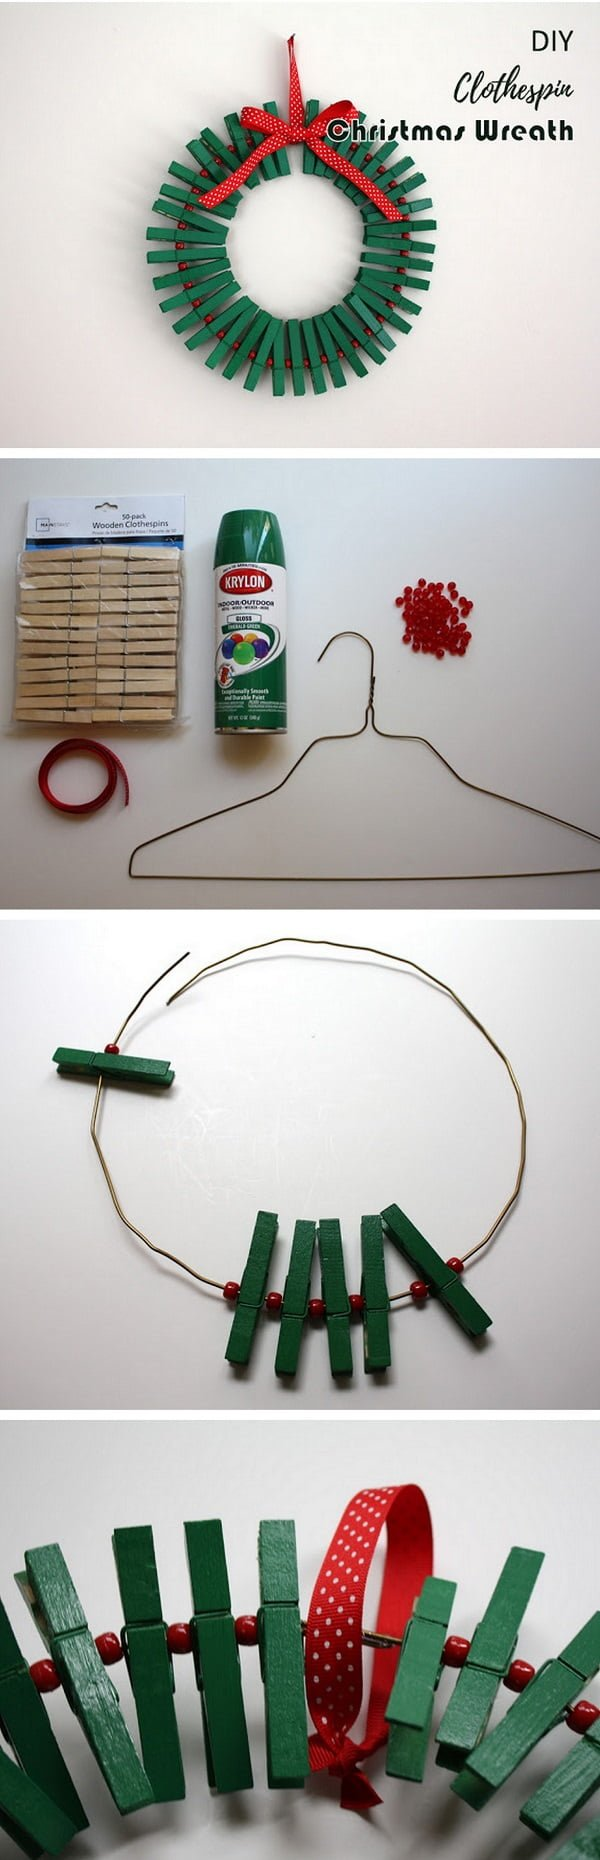 Check out this easy idea on how to make a #DIY clothespin #Christmas wreath #homedecor #crafts #project